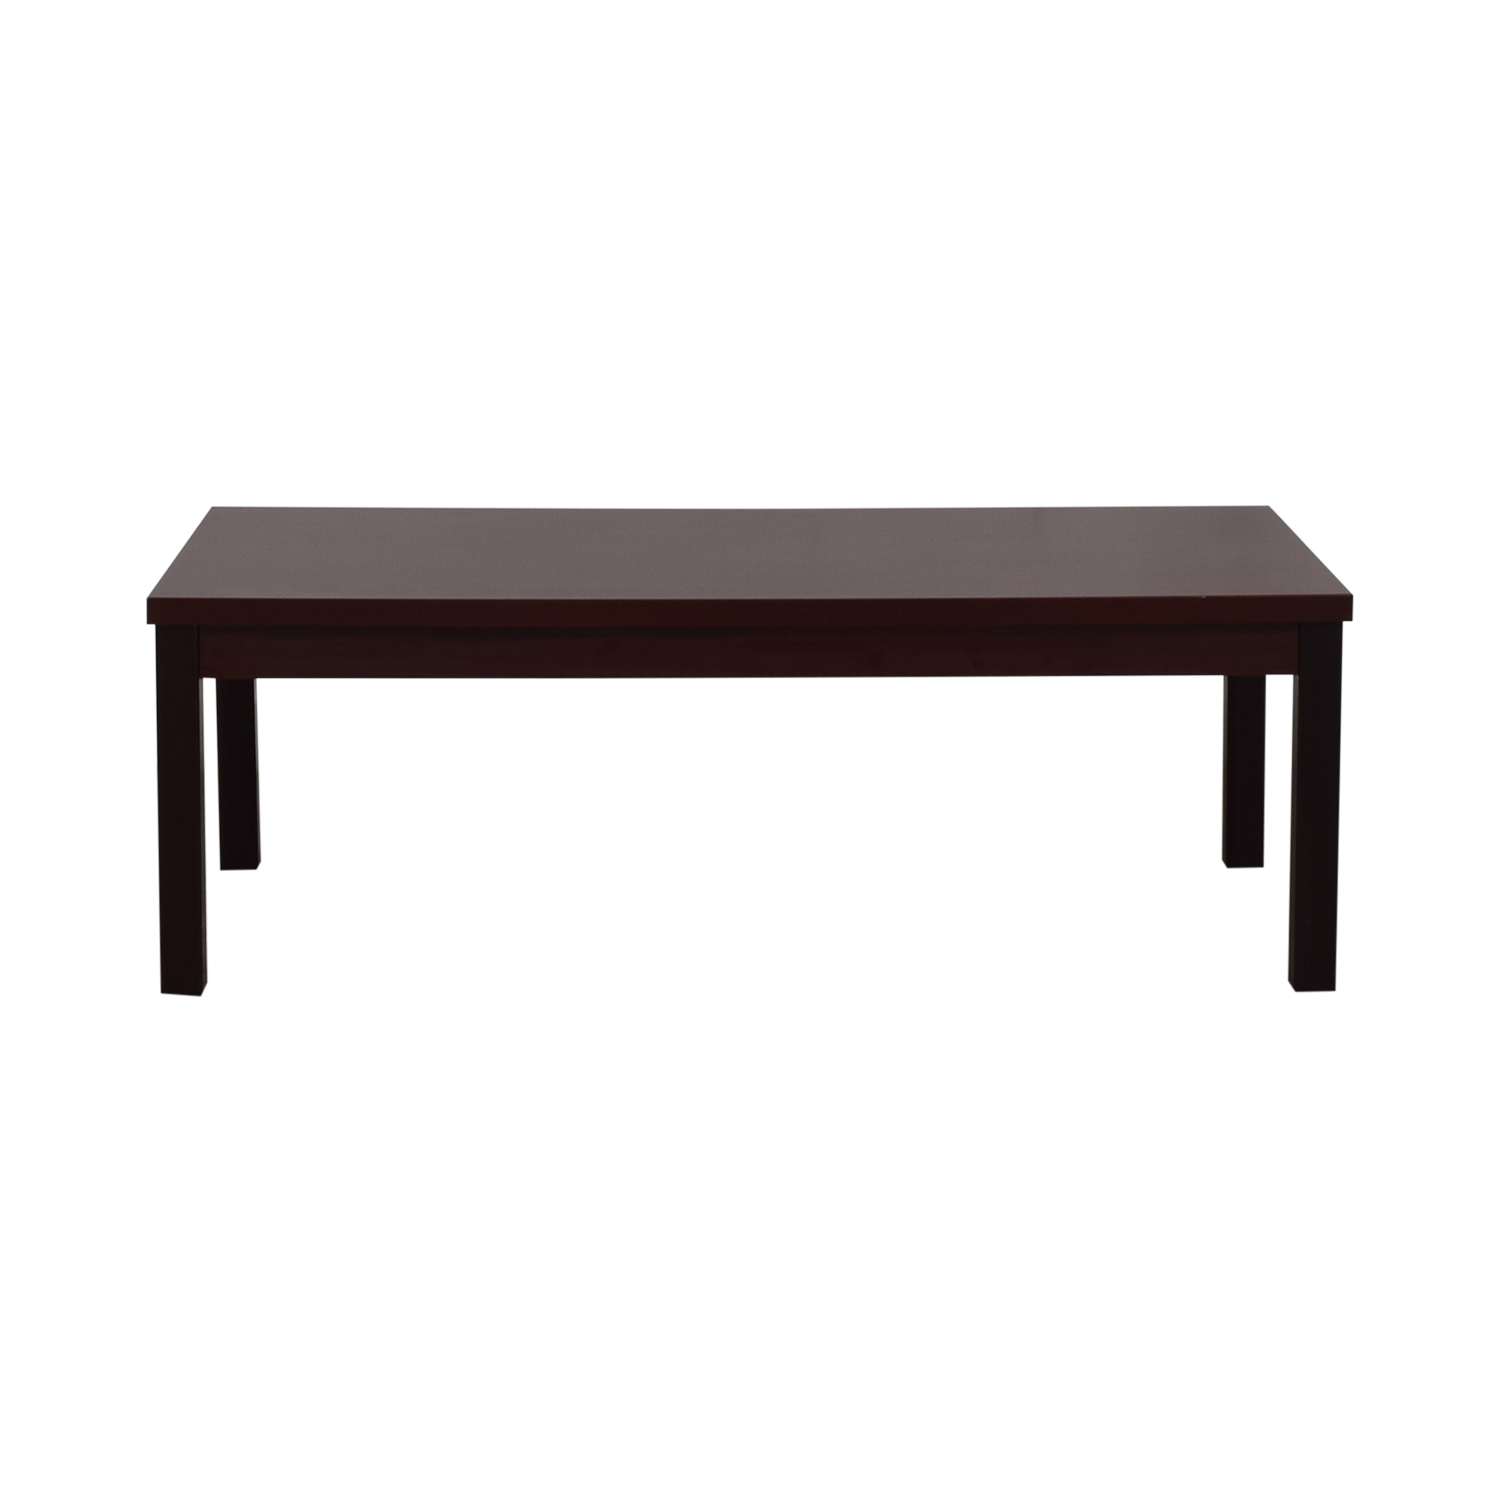 HON Furniture HON Furniture Coffee Table used